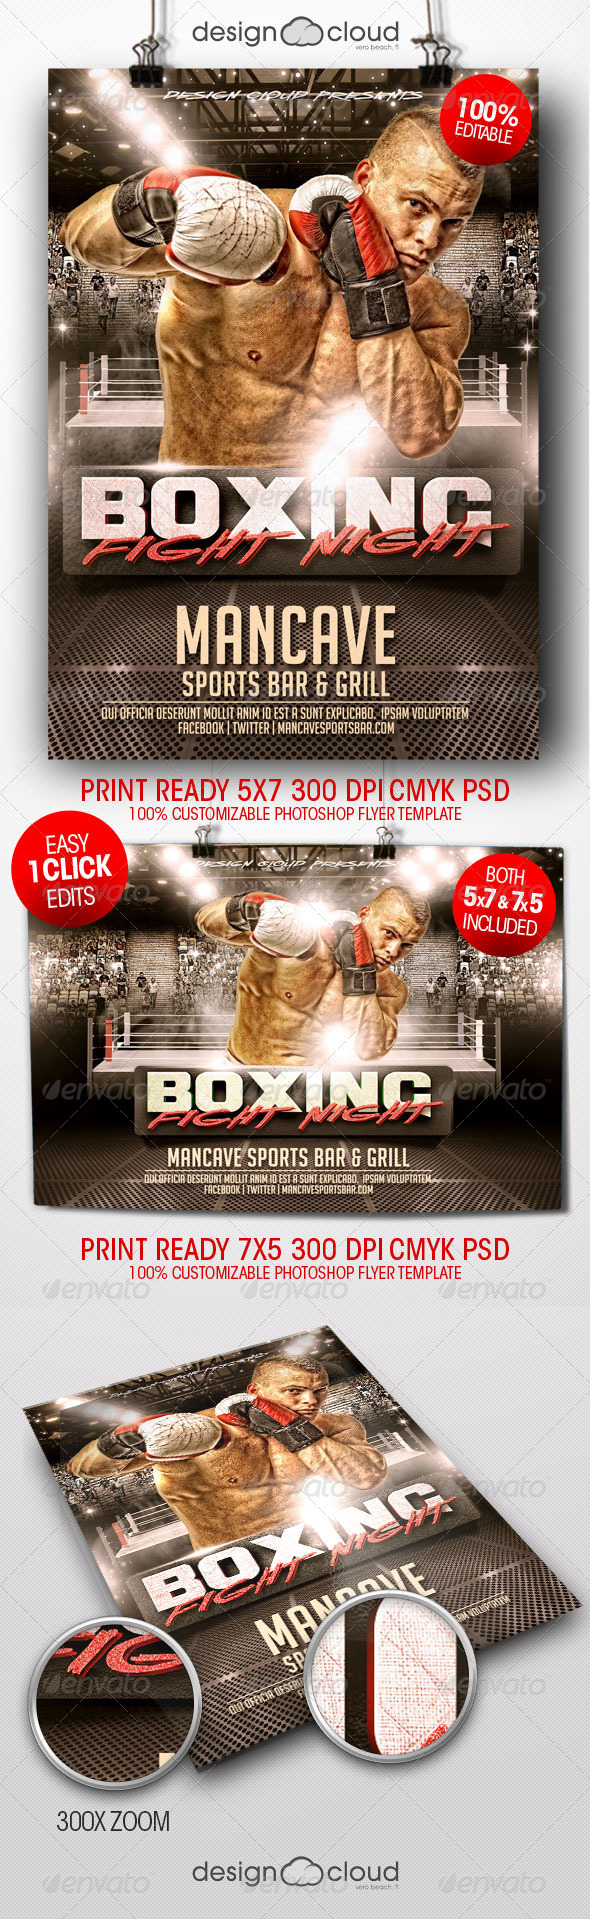 GraphicRiver Boxing Fight Night Flyer Templates 8430571